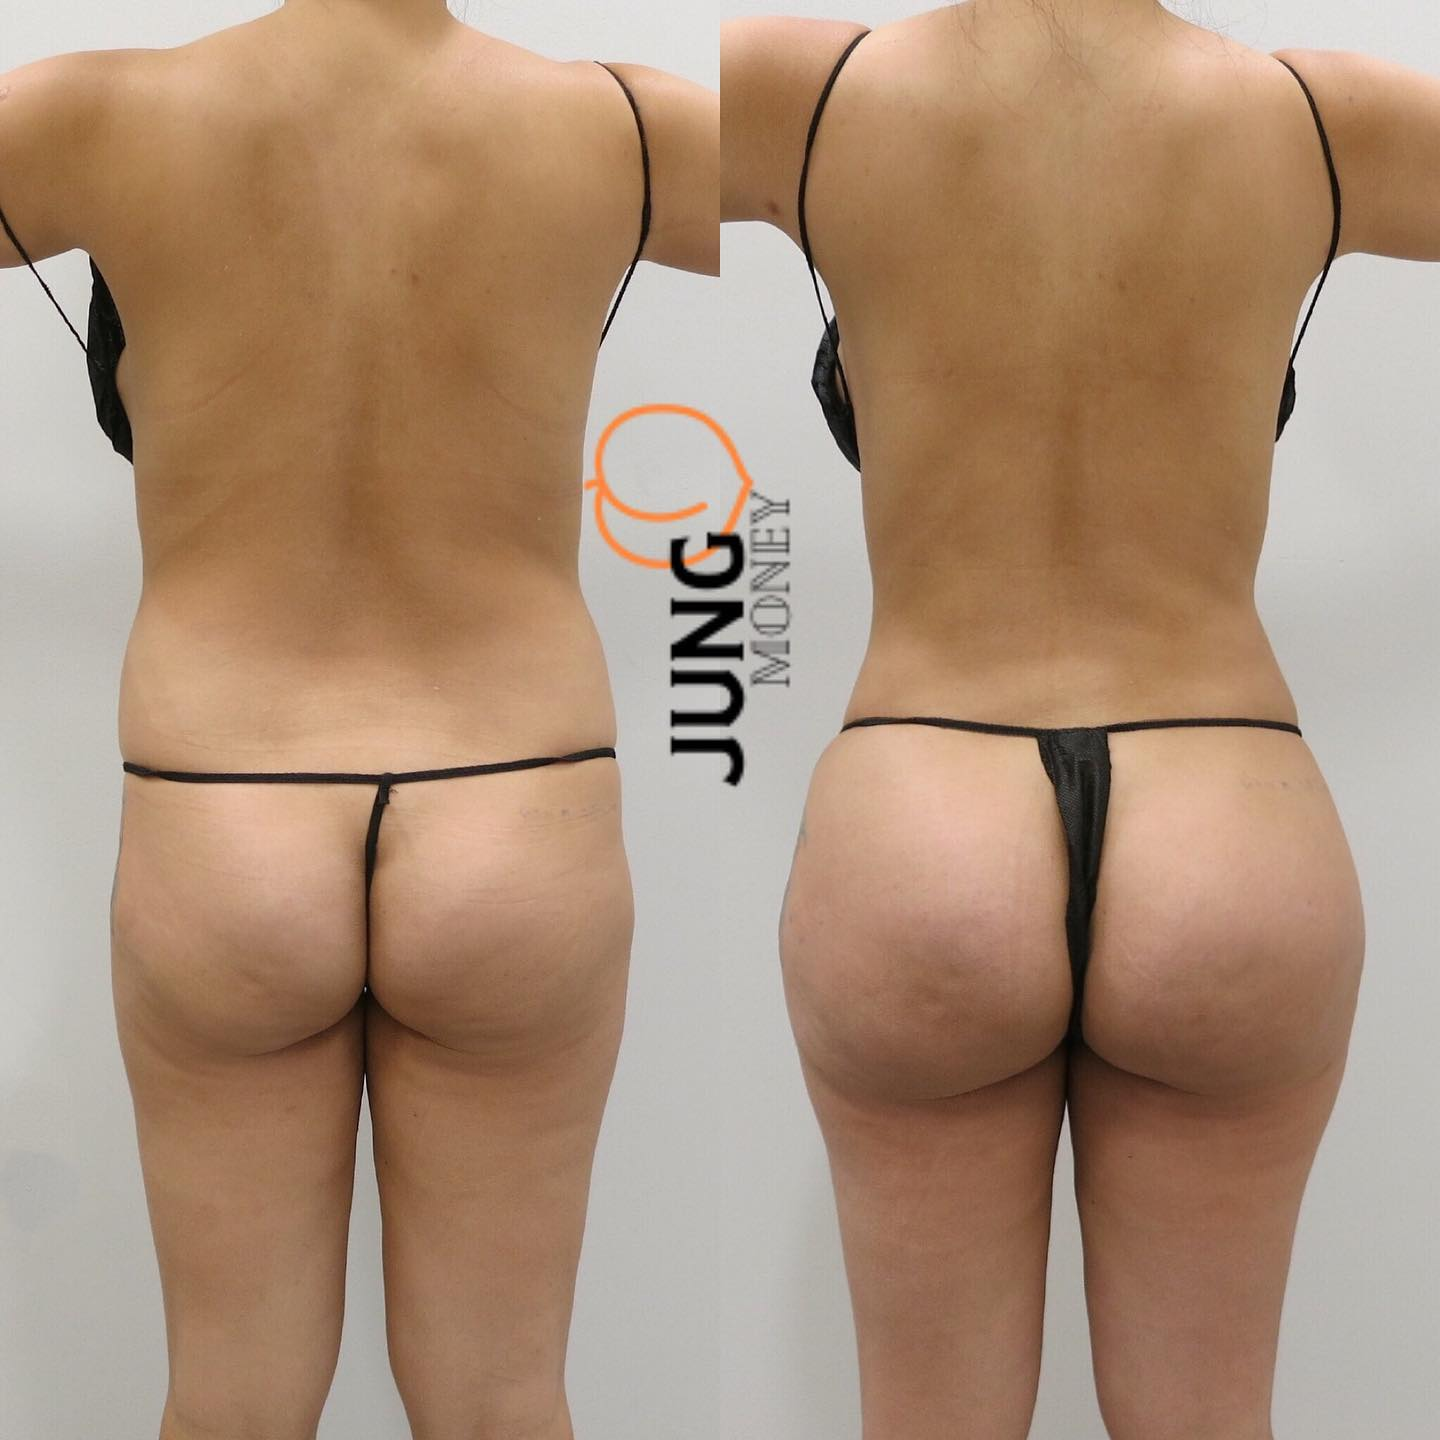 Fat transfer to buttocks recovery